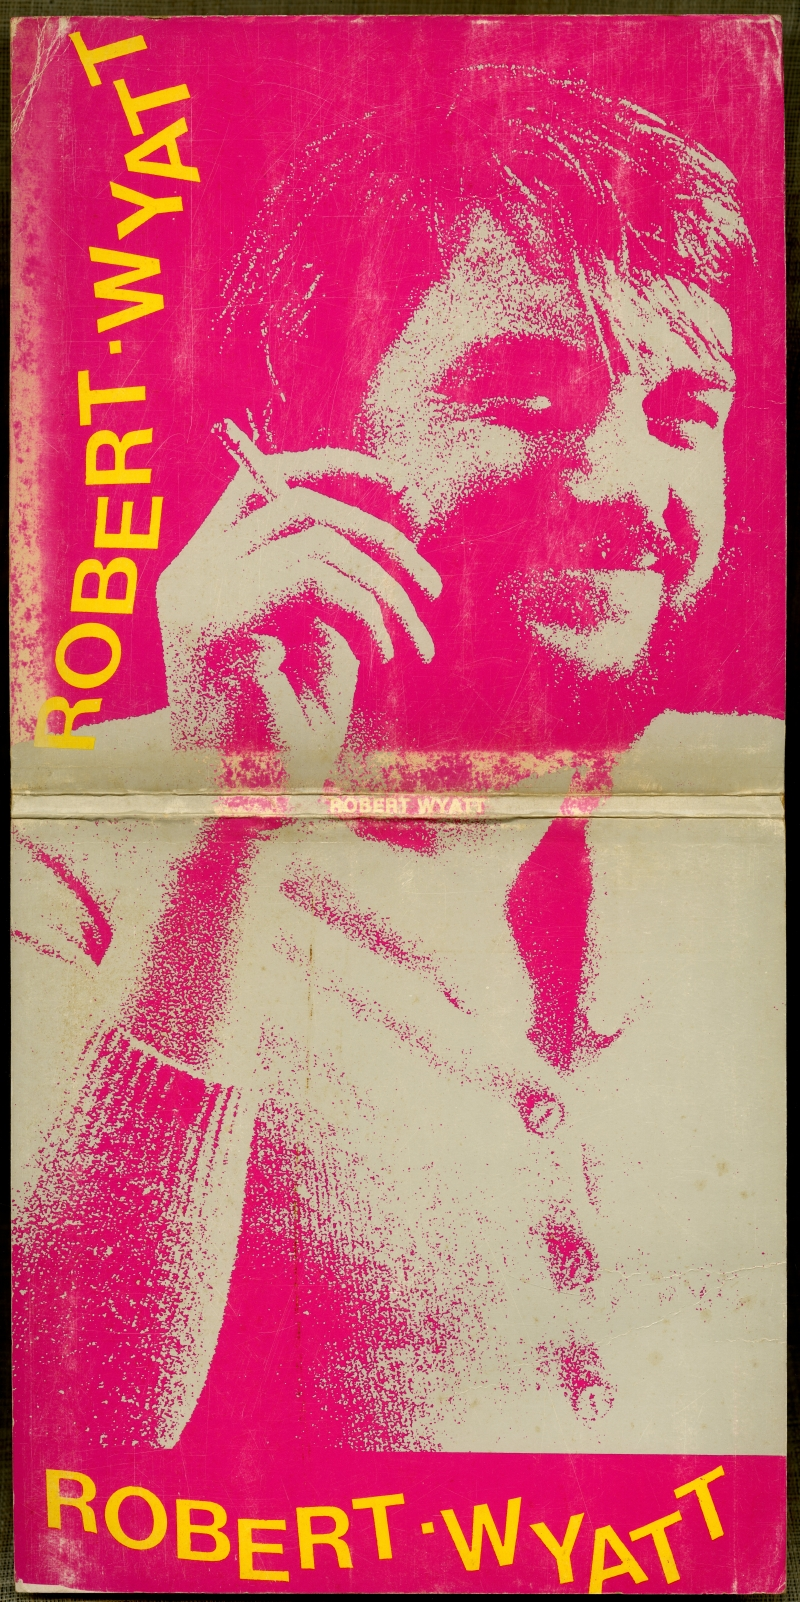 『ROBERT WYATT』(1987、Stampa Alternativa)表紙